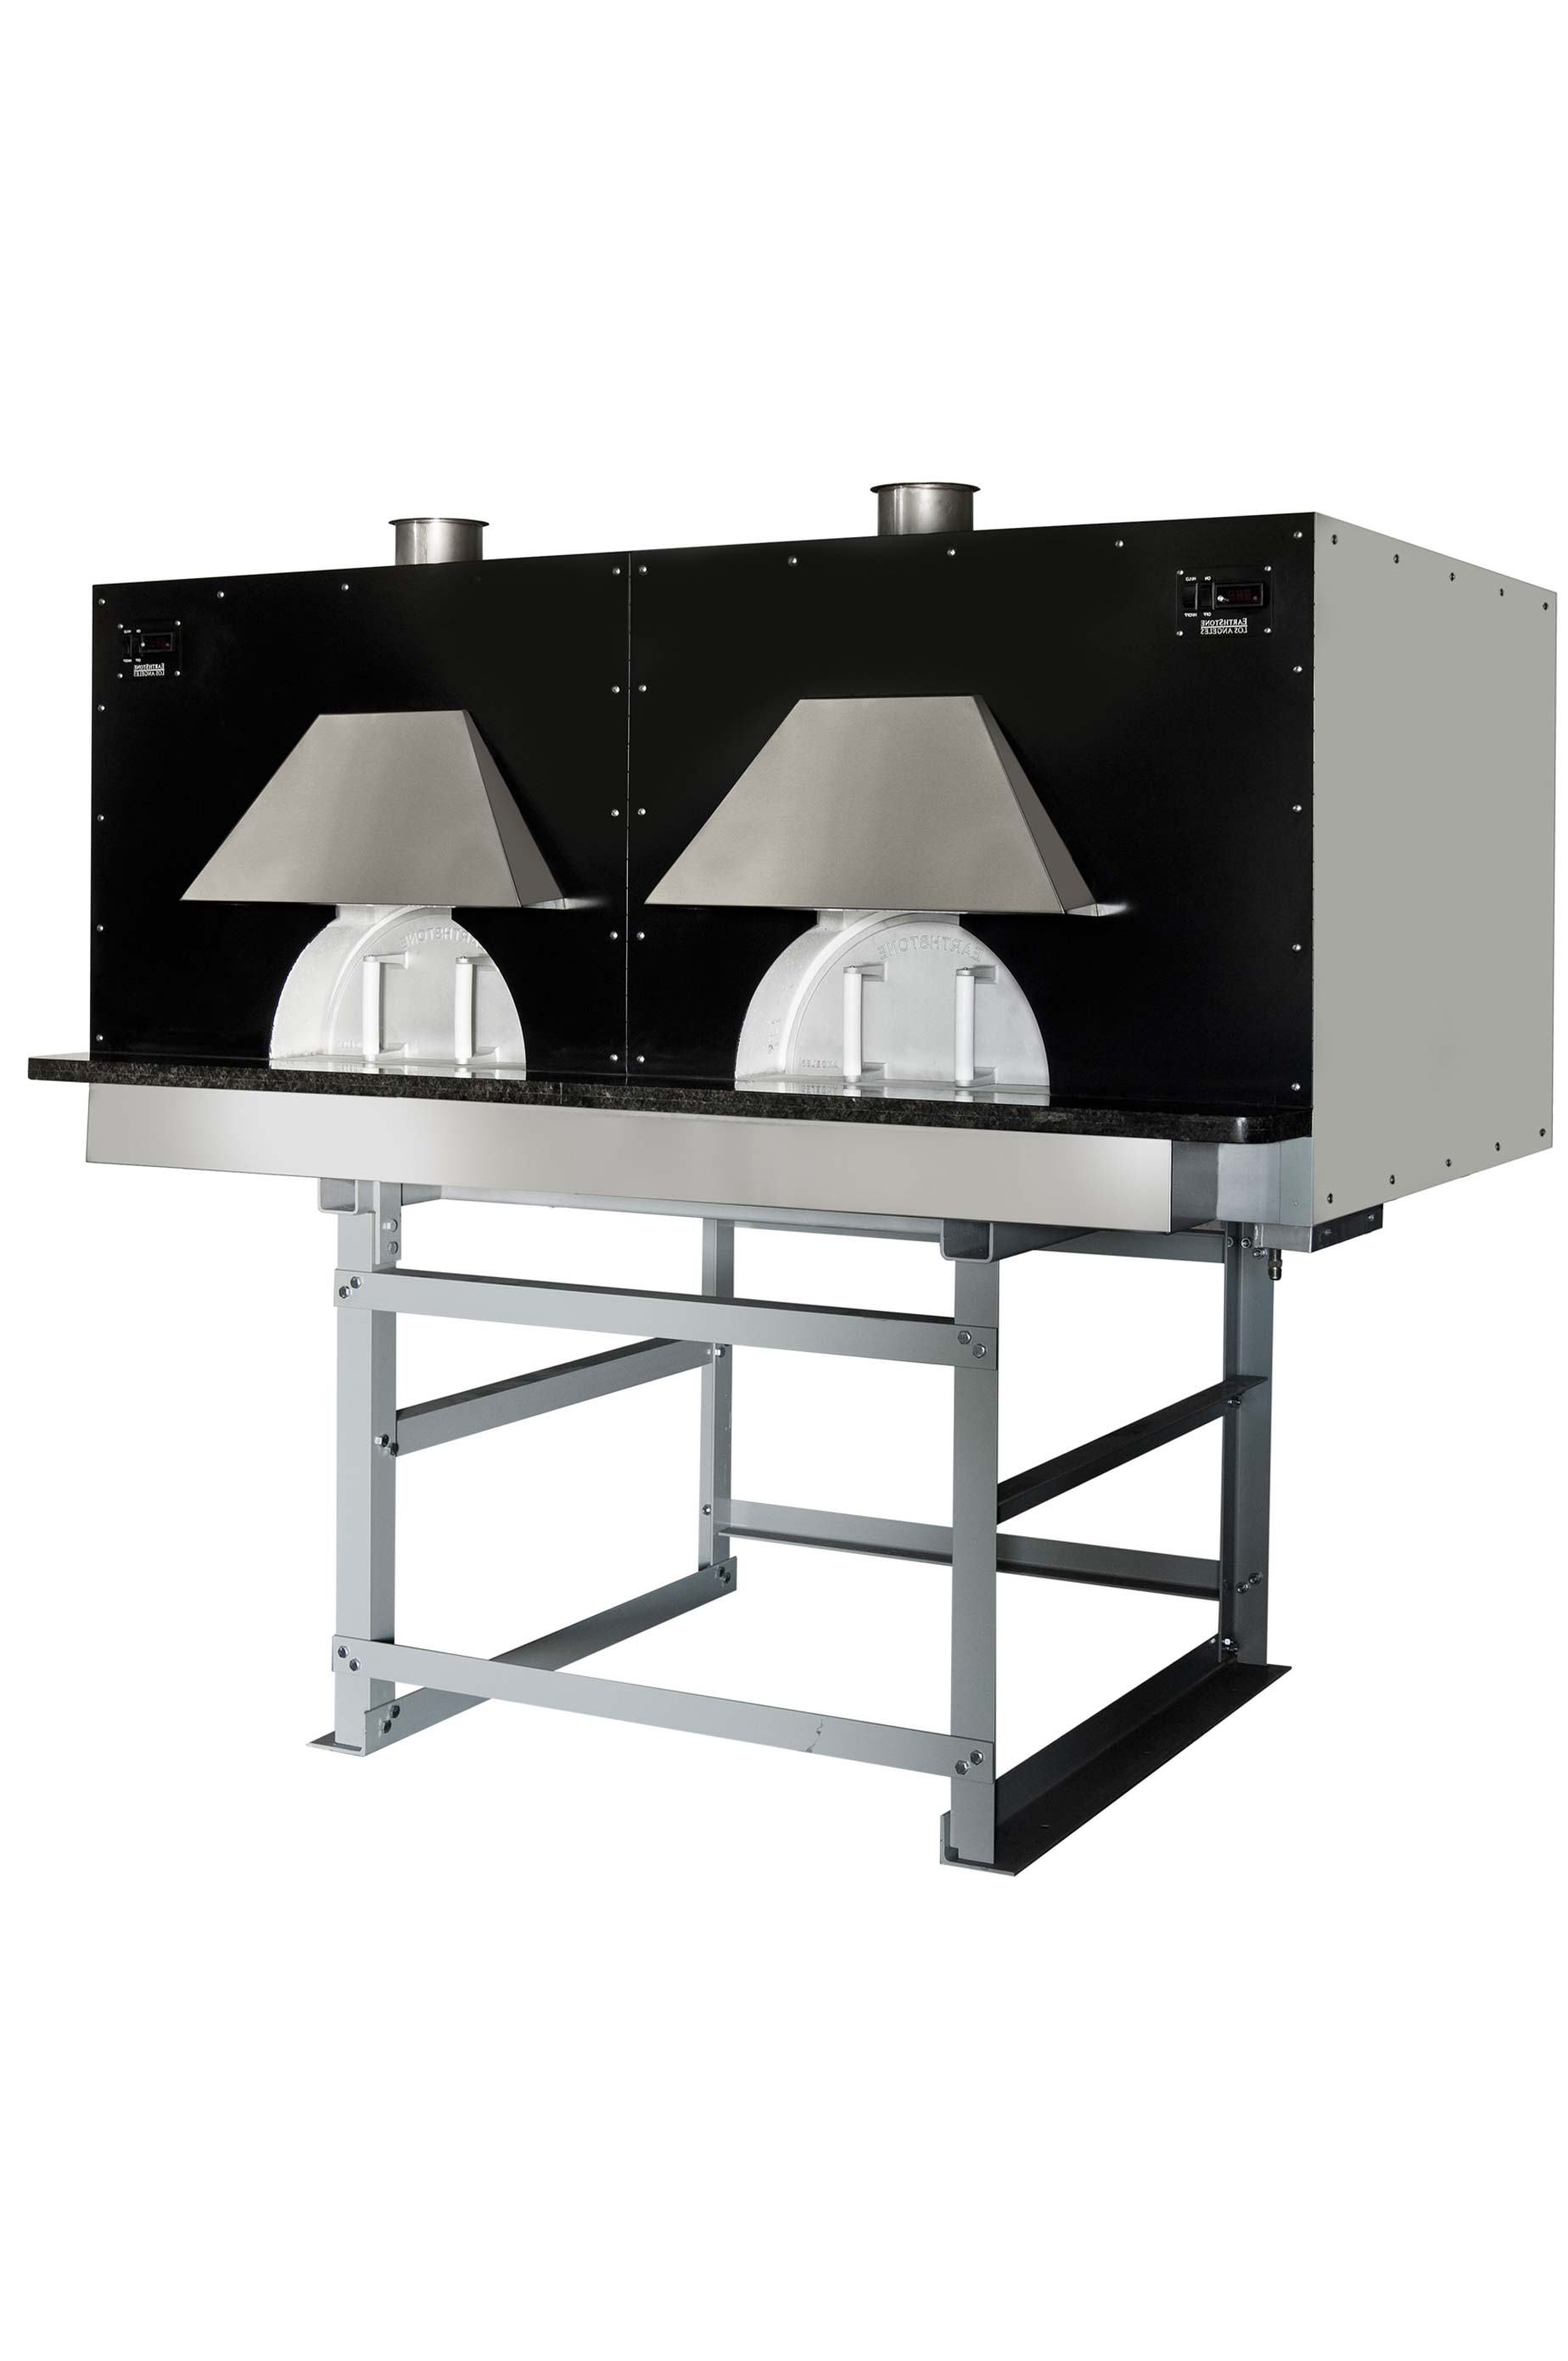 110 Due Pagw Earthstone Ovens Wood Amp Gas Fire Ovens